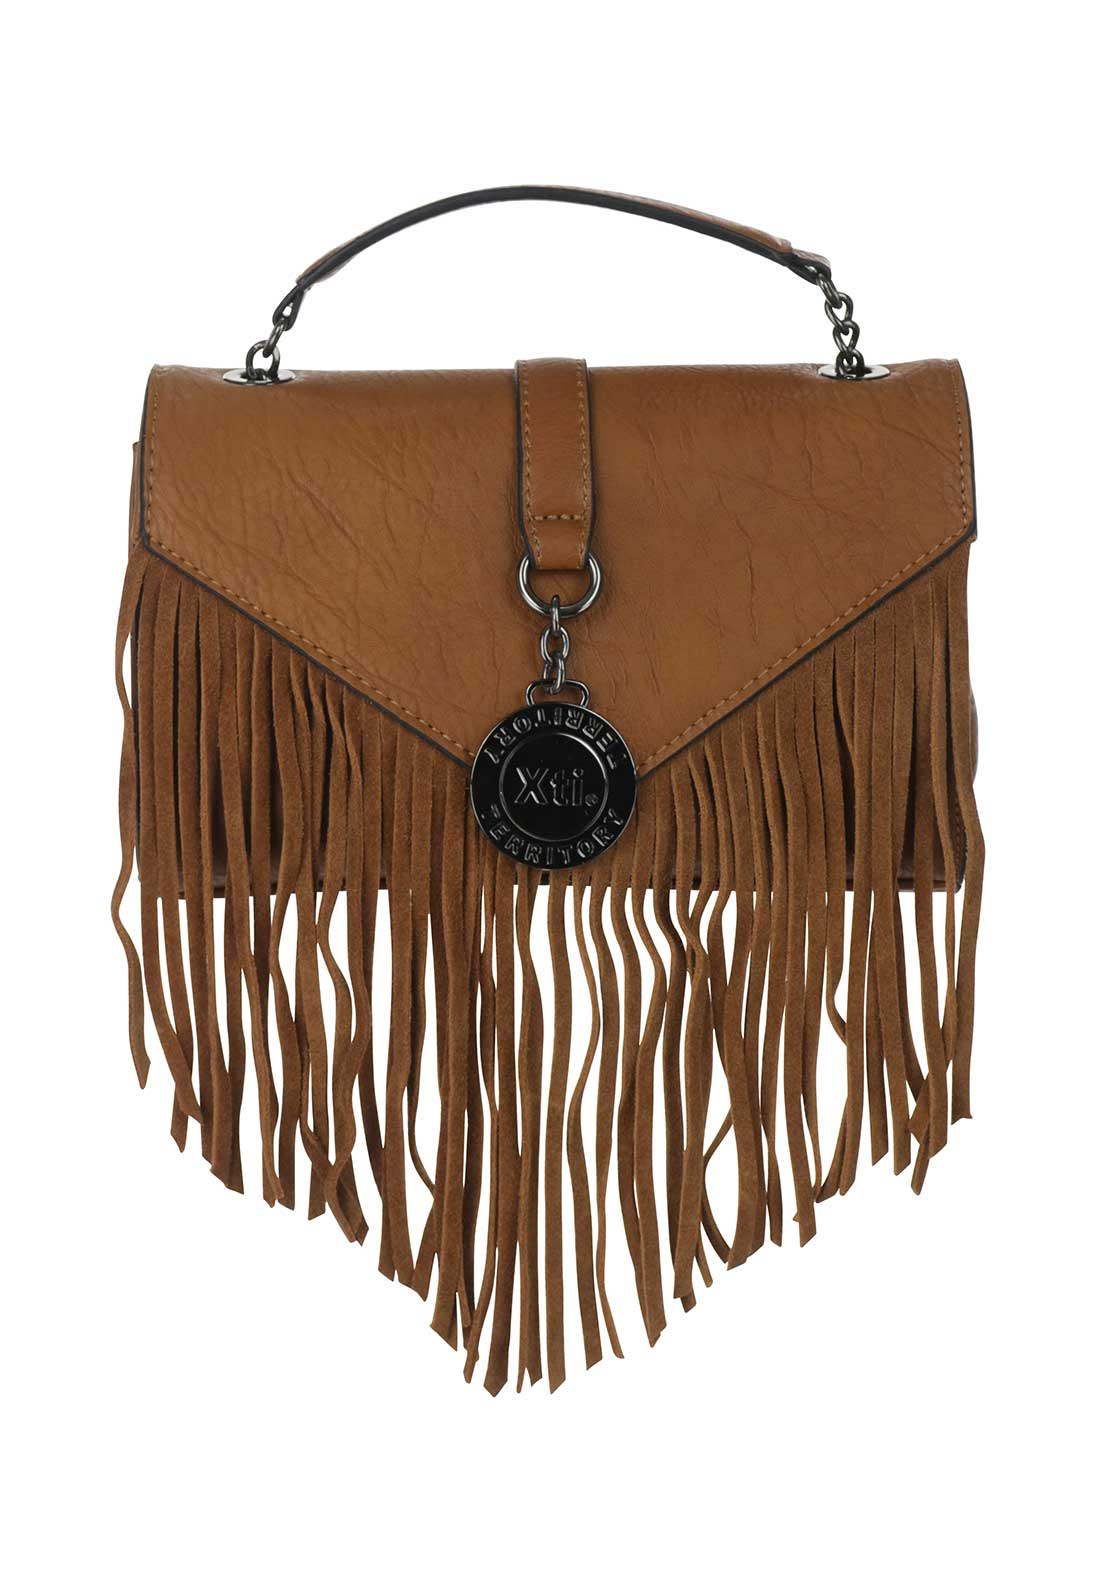 Xti Fringed Crossbody Bag, Tan